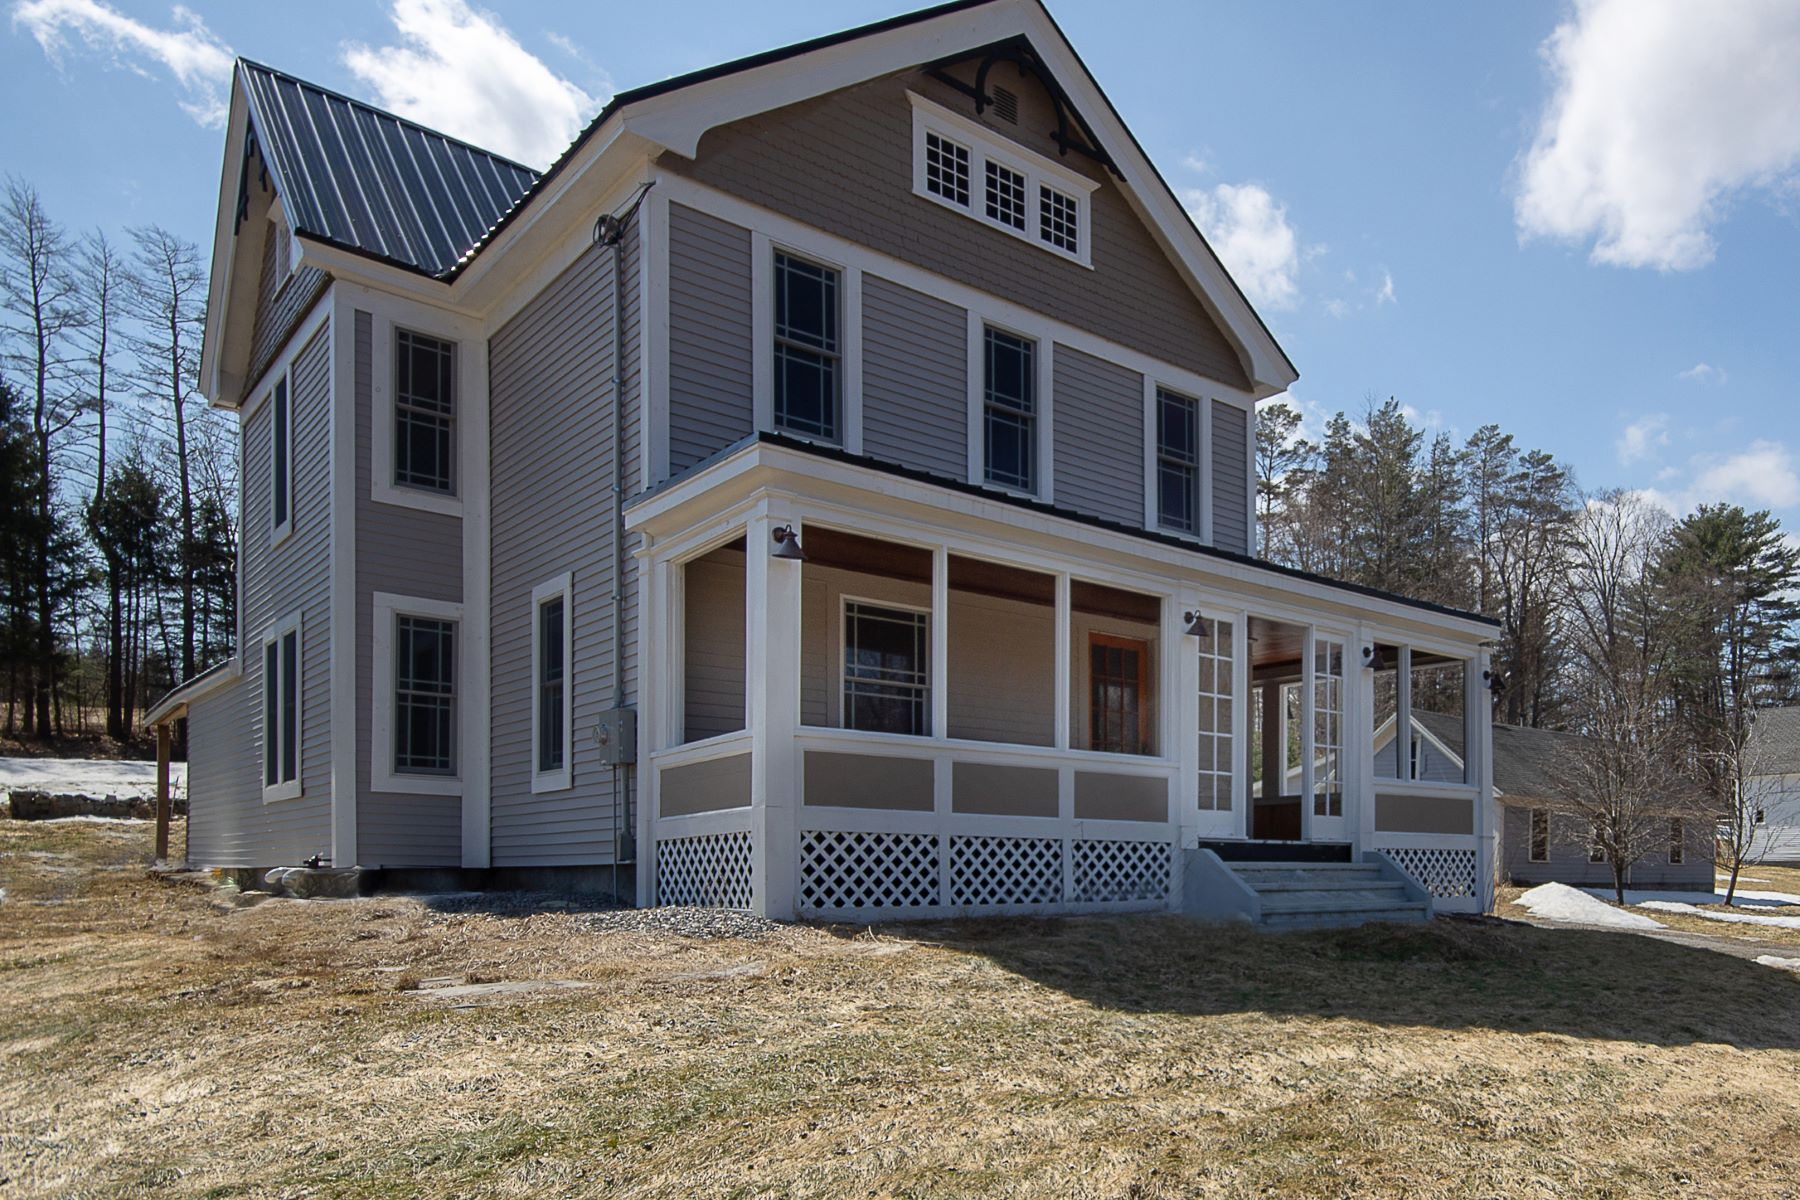 Single Family Home for Sale at Four Bedroom Victorian in Pike 1736 Mt. Moosilauke Hwy Haverhill, New Hampshire 03780 United States